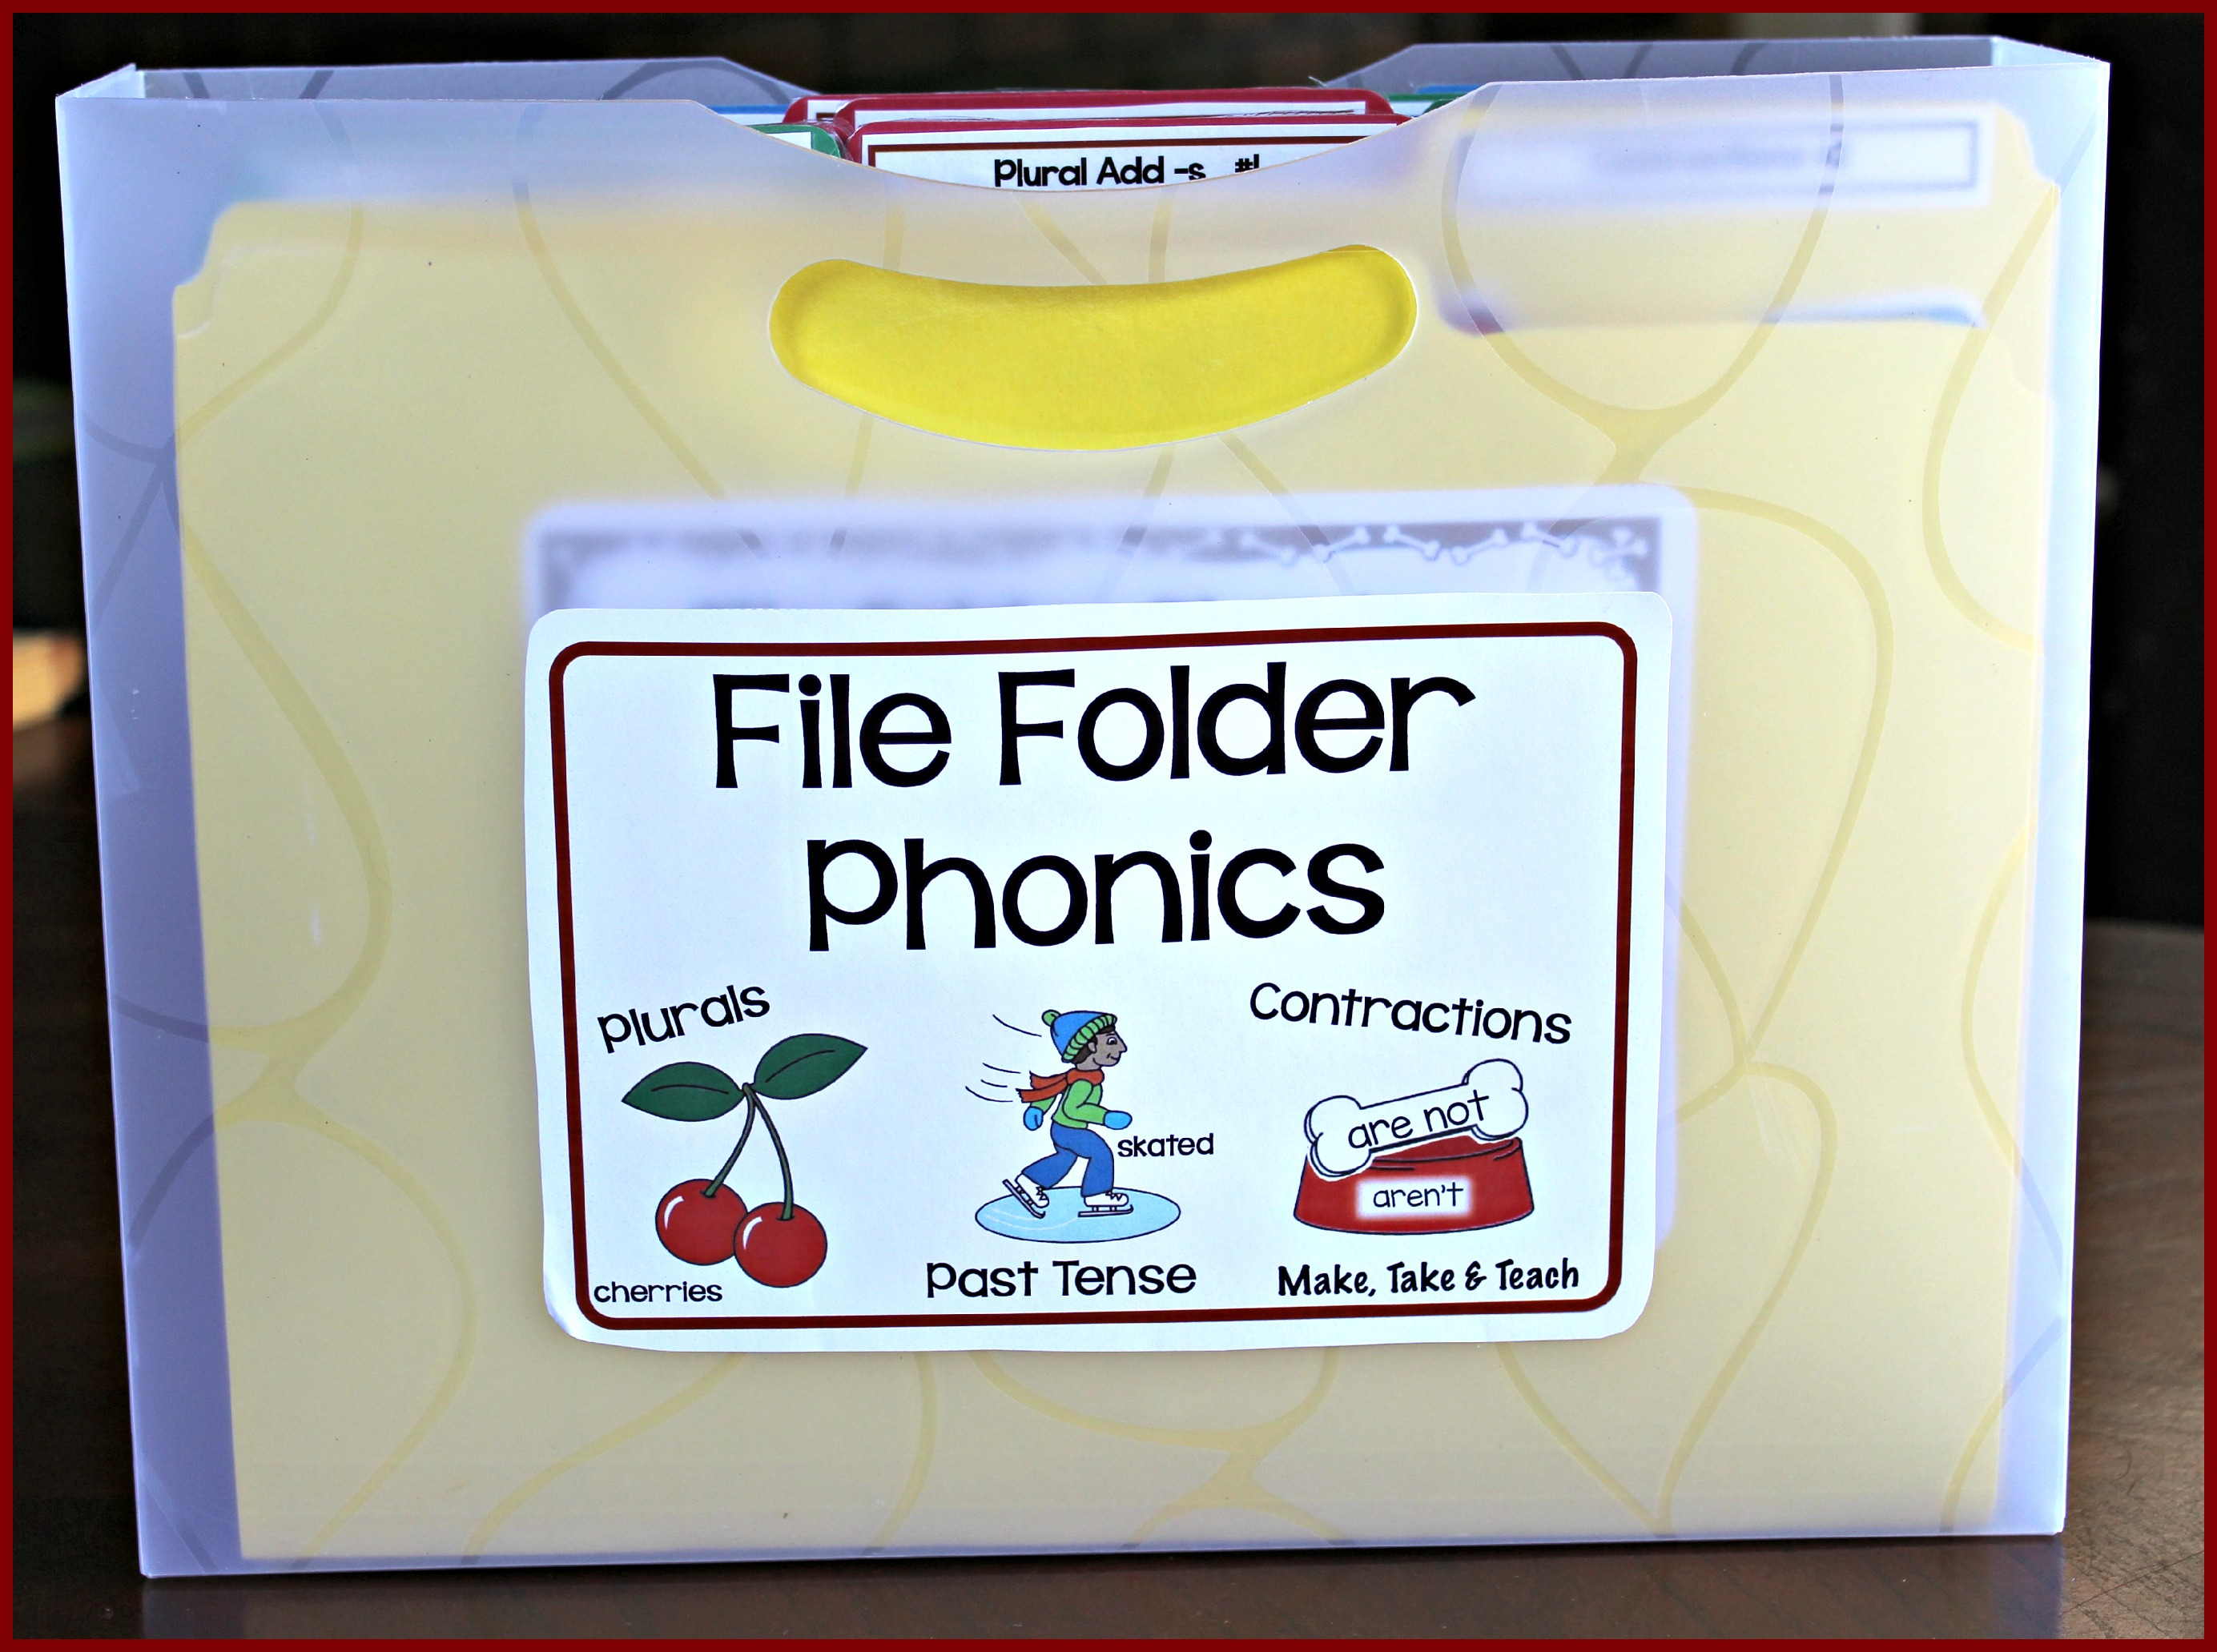 File Folder Phonicsborder